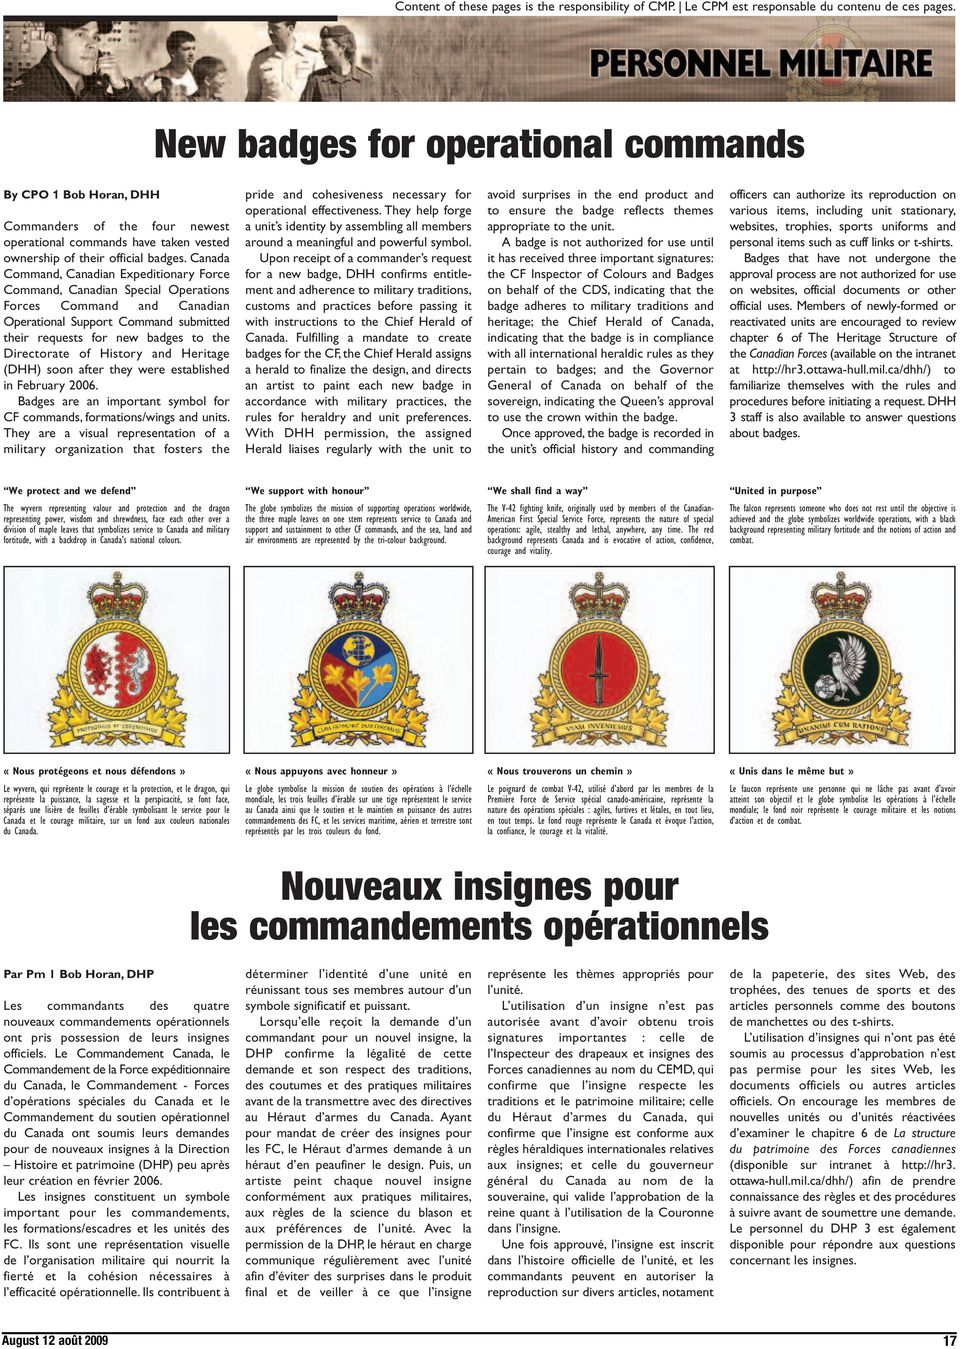 Canada Command, Canadian Expeditionary Force Command, Canadian Special Operations Forces Command and Canadian Operational Support Command submitted their requests for new badges to the Directorate of